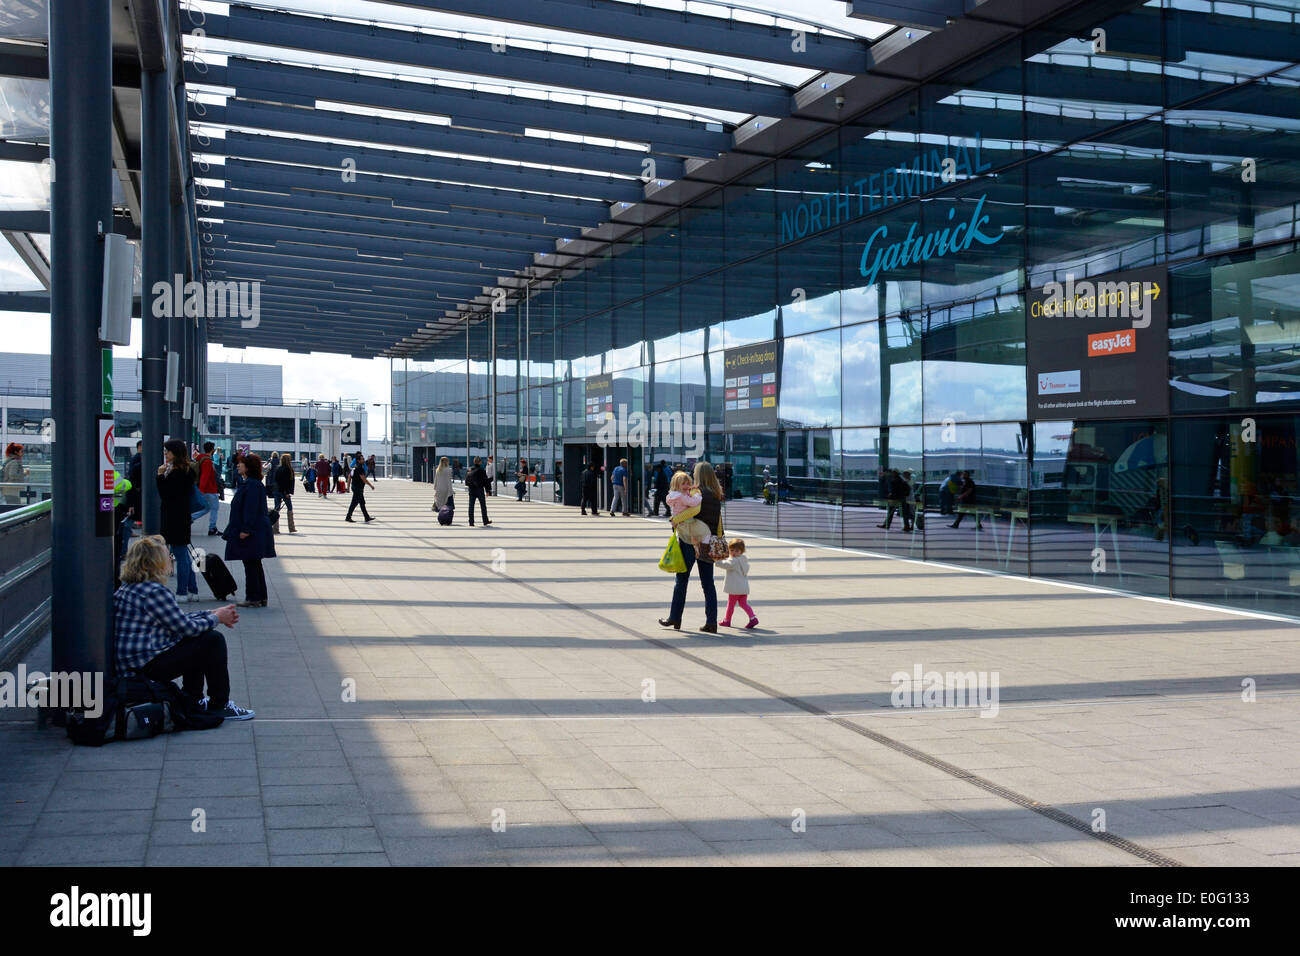 London Gatwick Airport North Terminal entrance - Stock Image